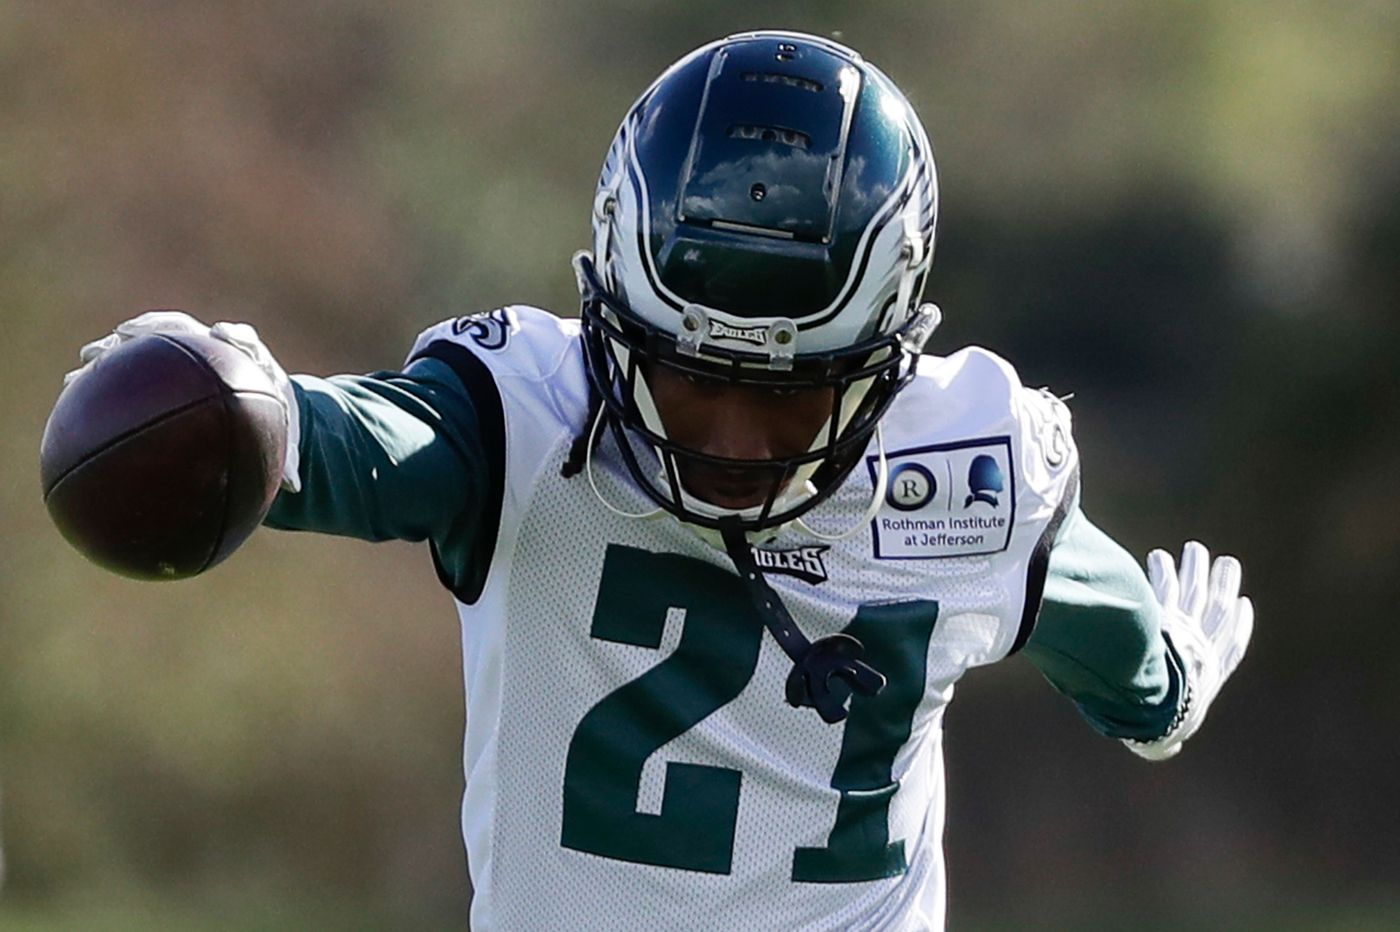 Eagles cornerback Ronald Darby confident he'll be ready for the start of the season